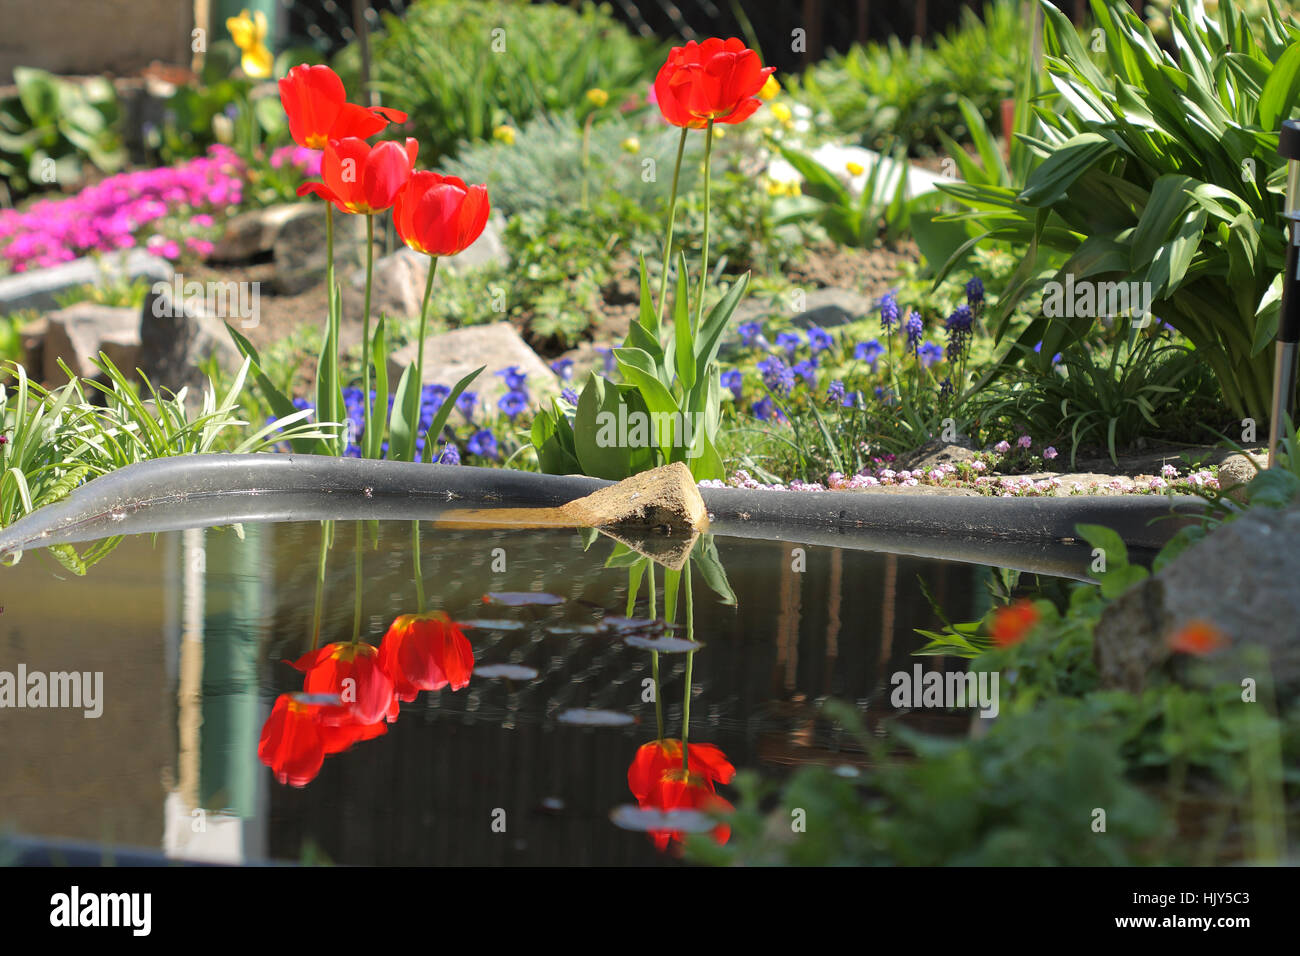 Spring flowers  of  tulip on blurred background, reflection in water in garden pond - Stock Image